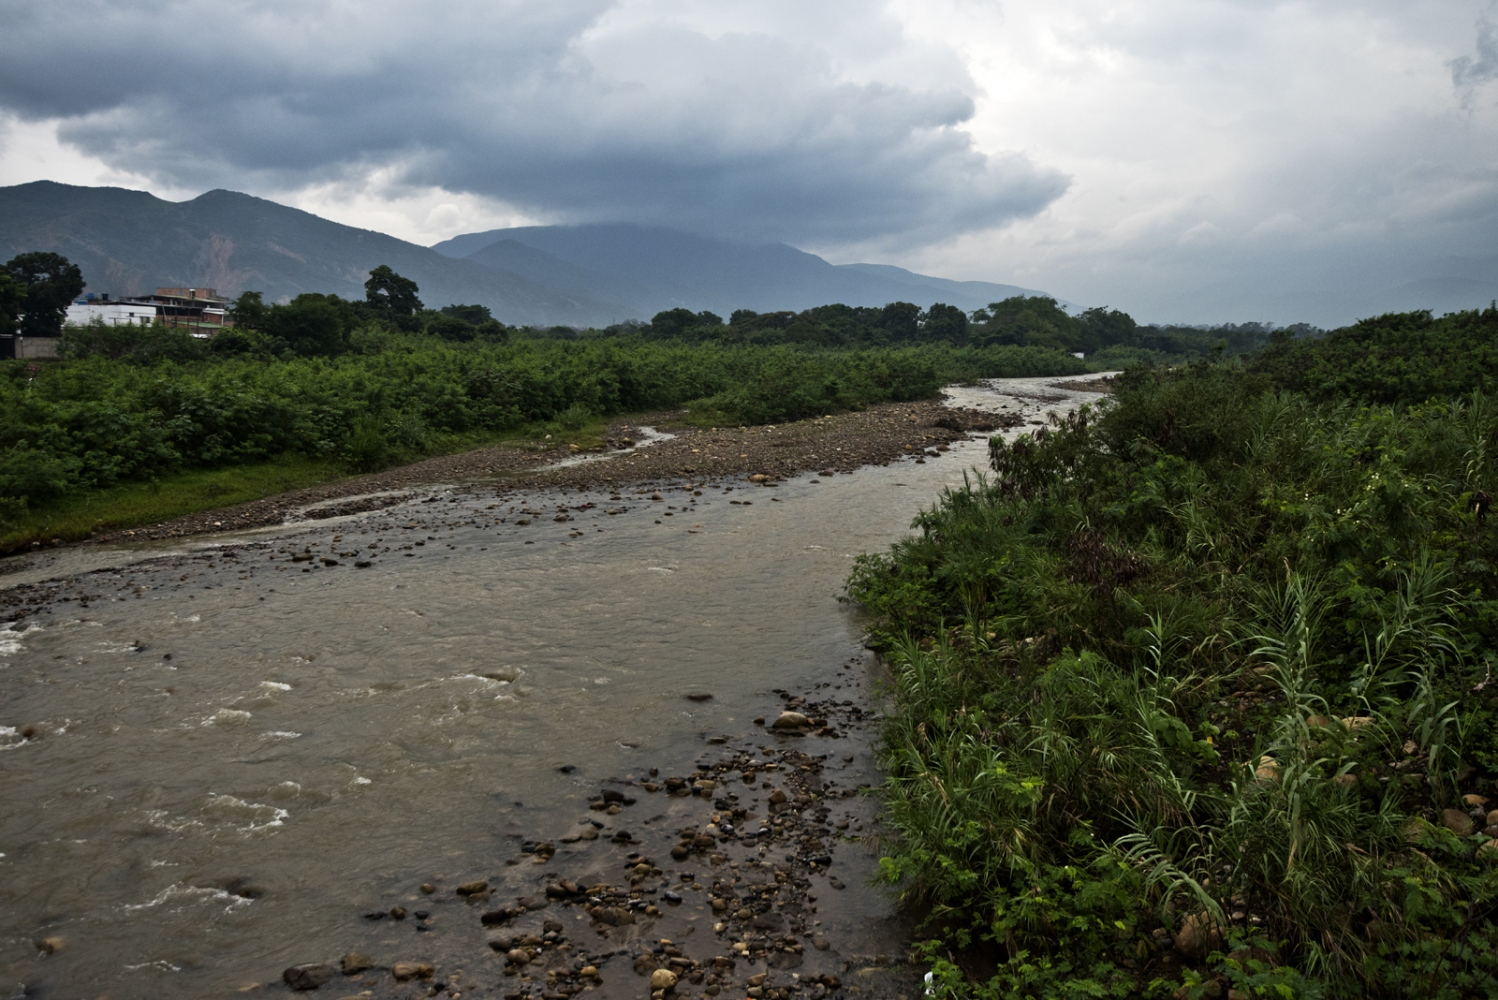 Tachira River between Colombia and Venezuela on March 2017 in Cucuta, Colombia.